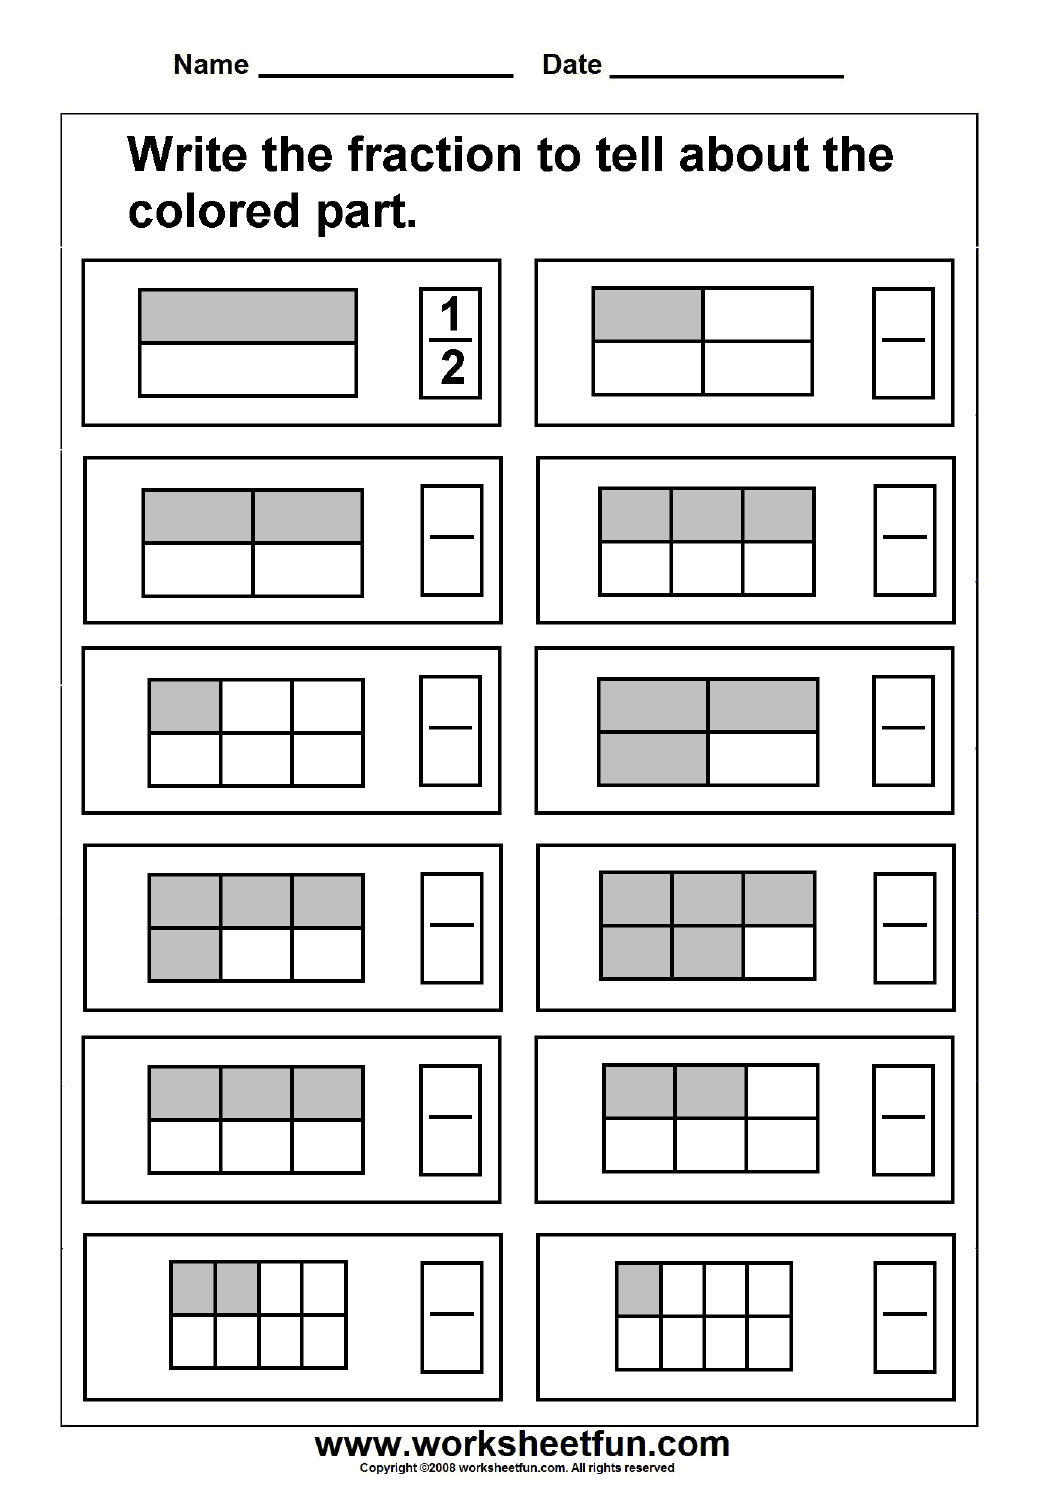 Fraction FREE Printable Worksheets Worksheetfun – Fraction Worksheets Grade 3